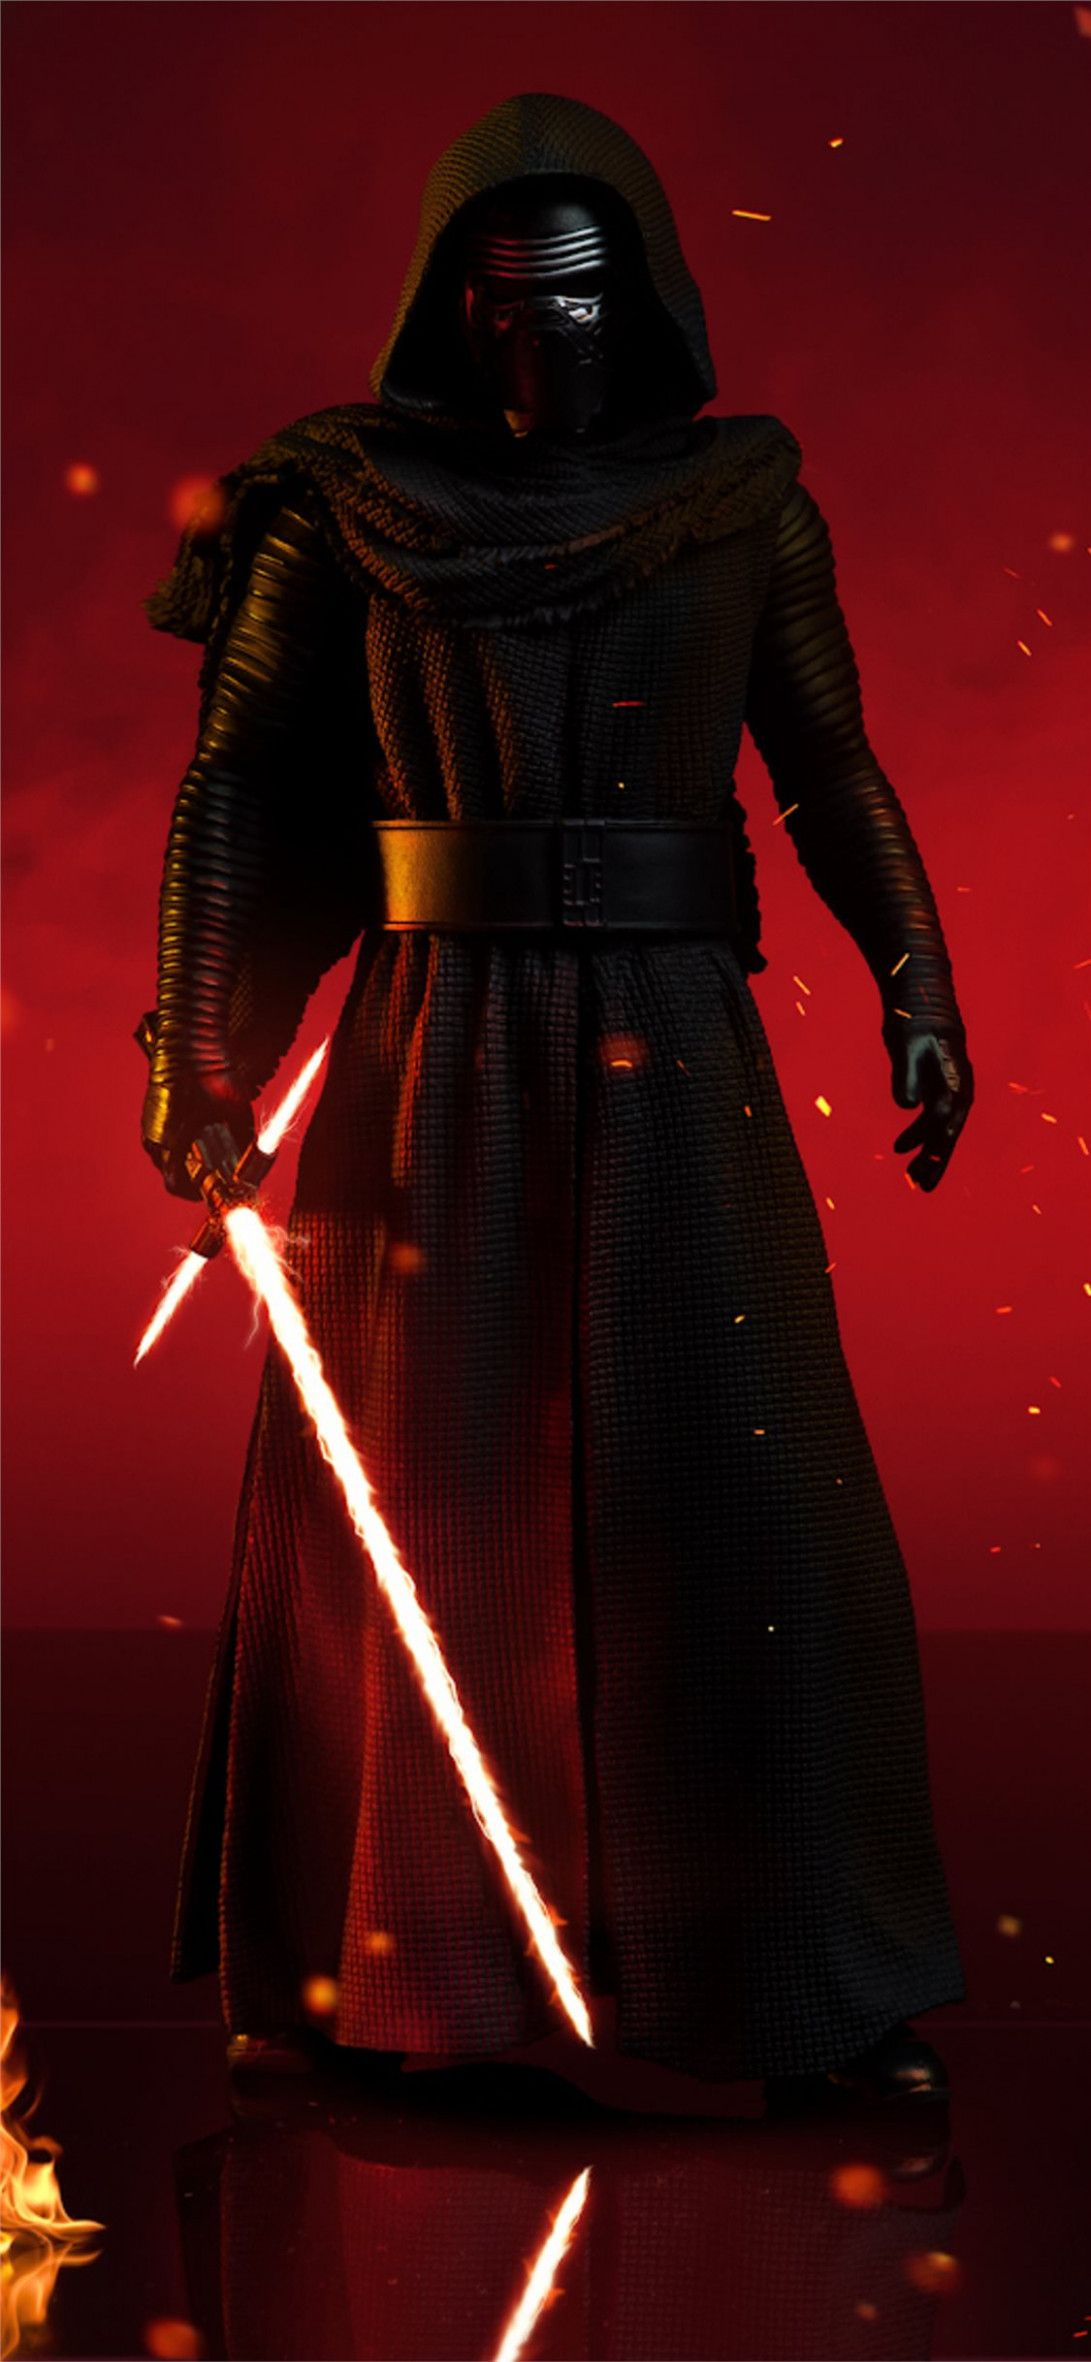 How To Get People To Like Kylo Ren Iphone Wallpaper Kylo Ren Iphone Wallpaper Https Ift Tt 2fbclcn Star Wars Images Star Wars Pictures Star Wars Wallpaper